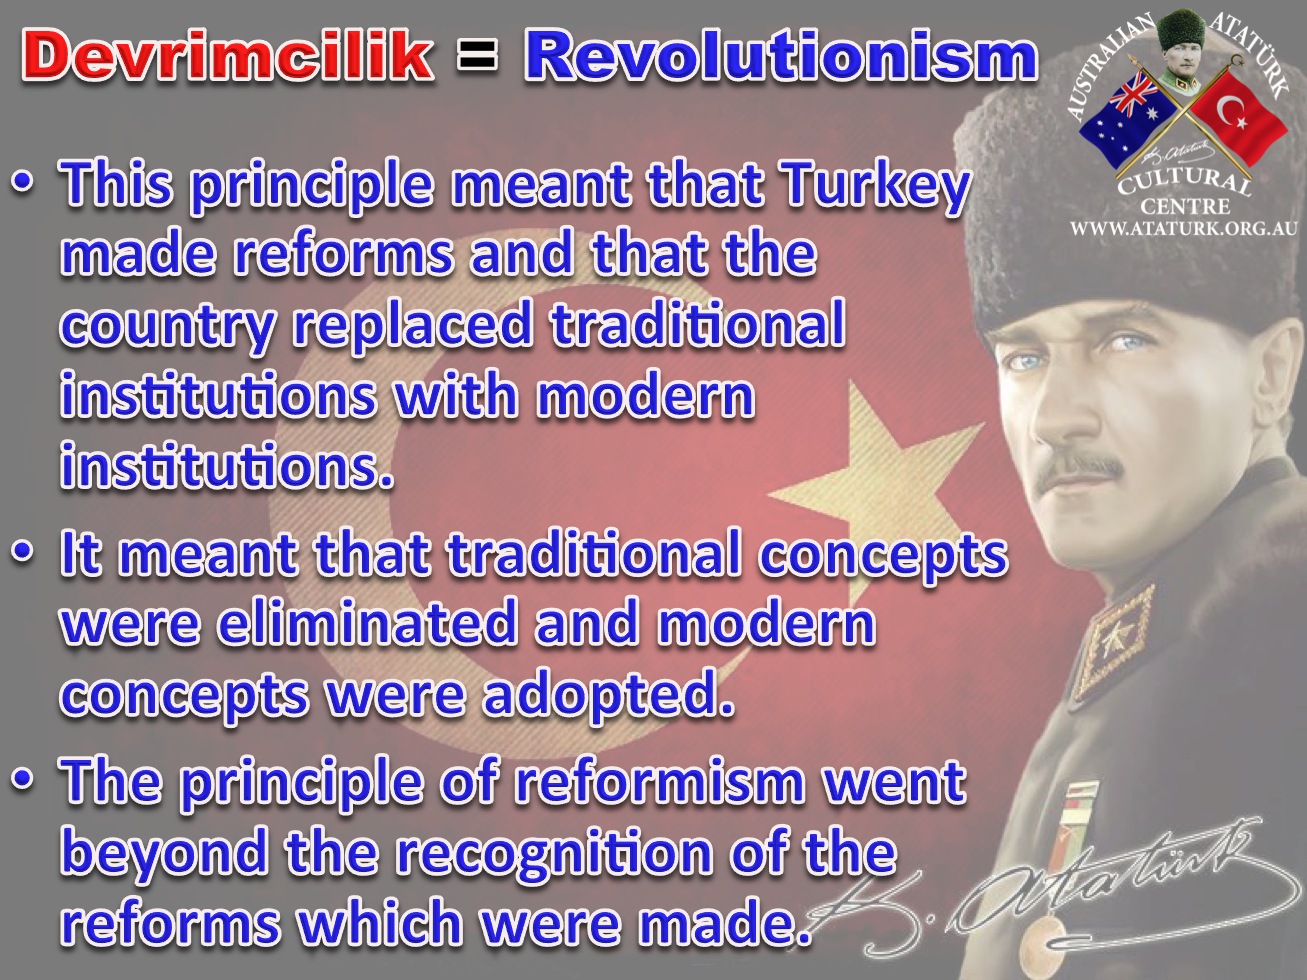 AAKM - Ataturk Principles and Reforms - 8 Revolutionism